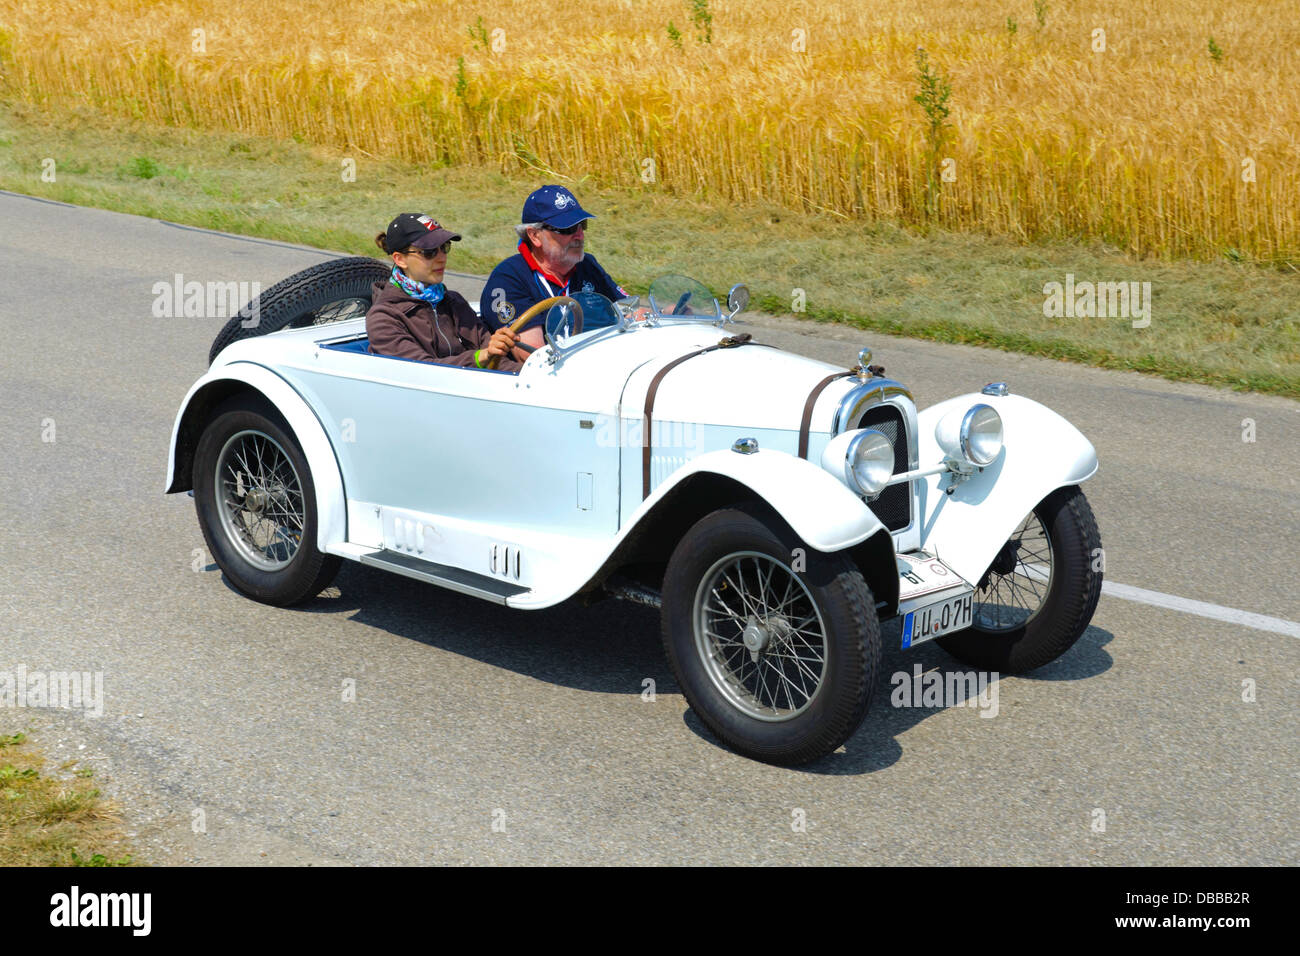 Oldtimer rally for at least 80 years old antique cars with Aero 10, built at year 1929 - Stock Image